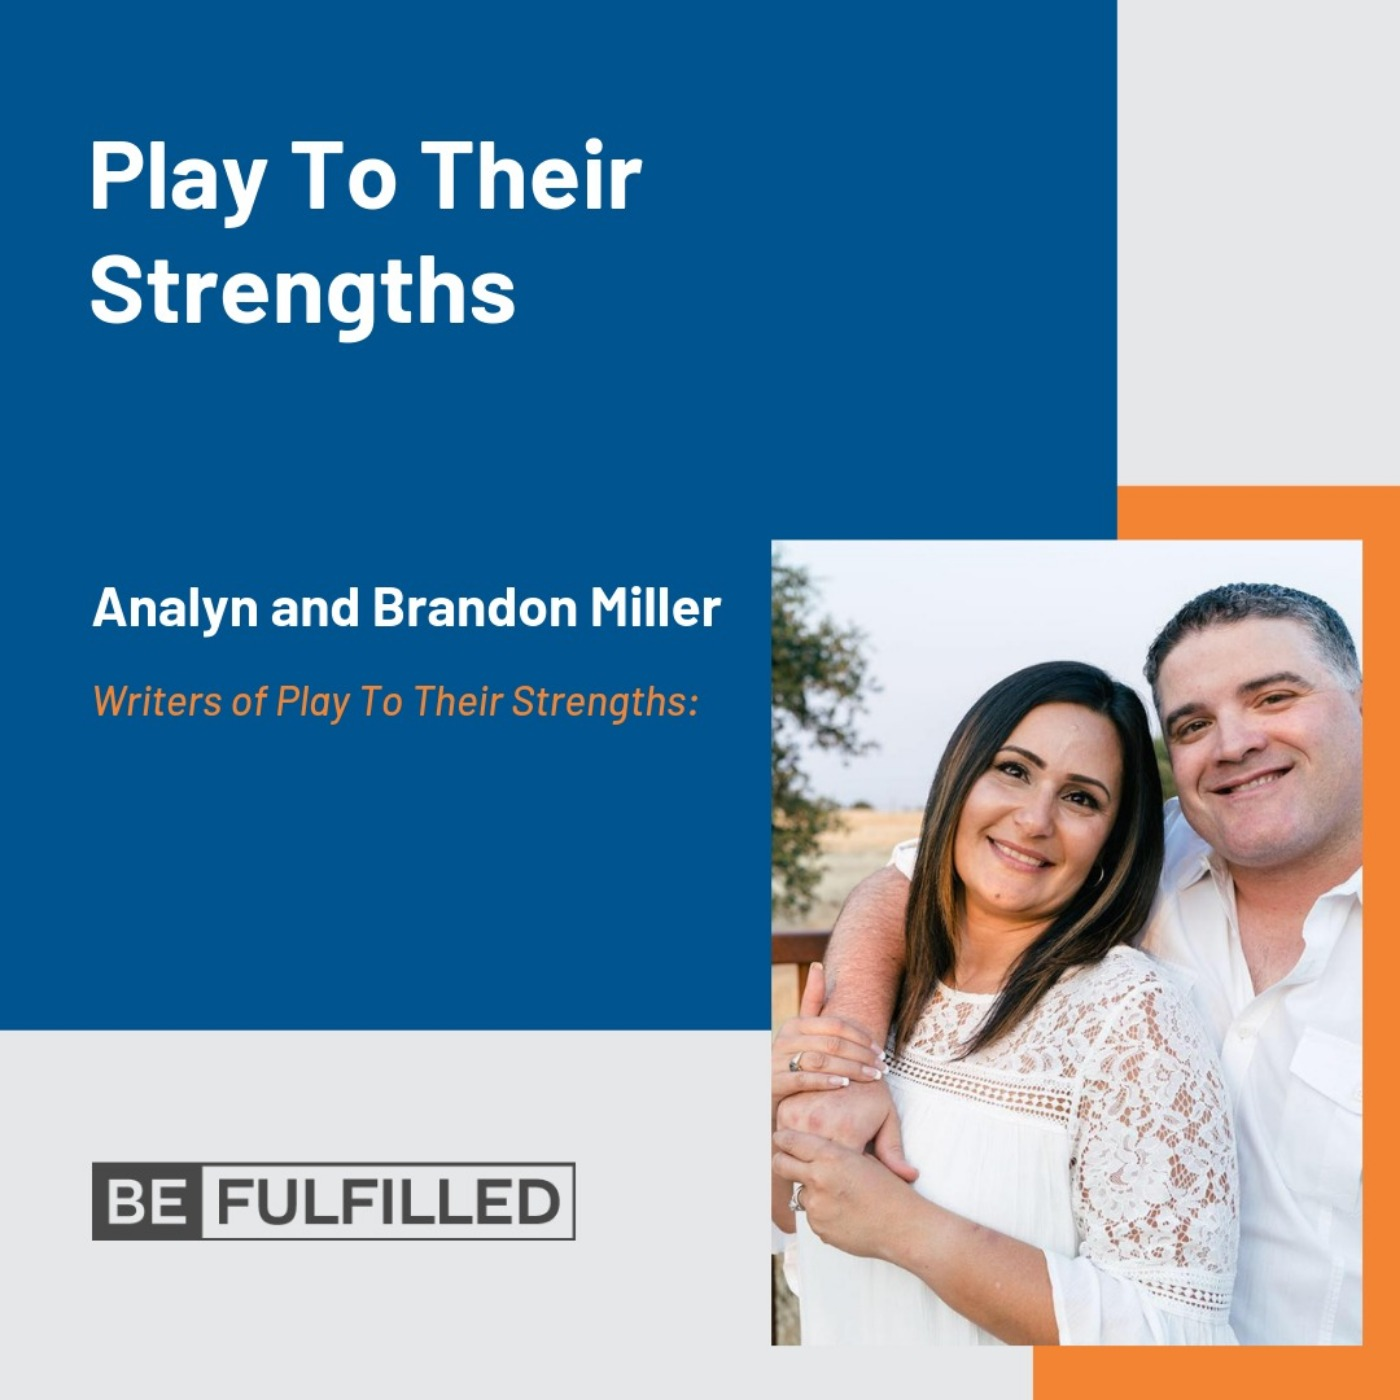 Play To Their Strengths- Analyn and Brandon Miller